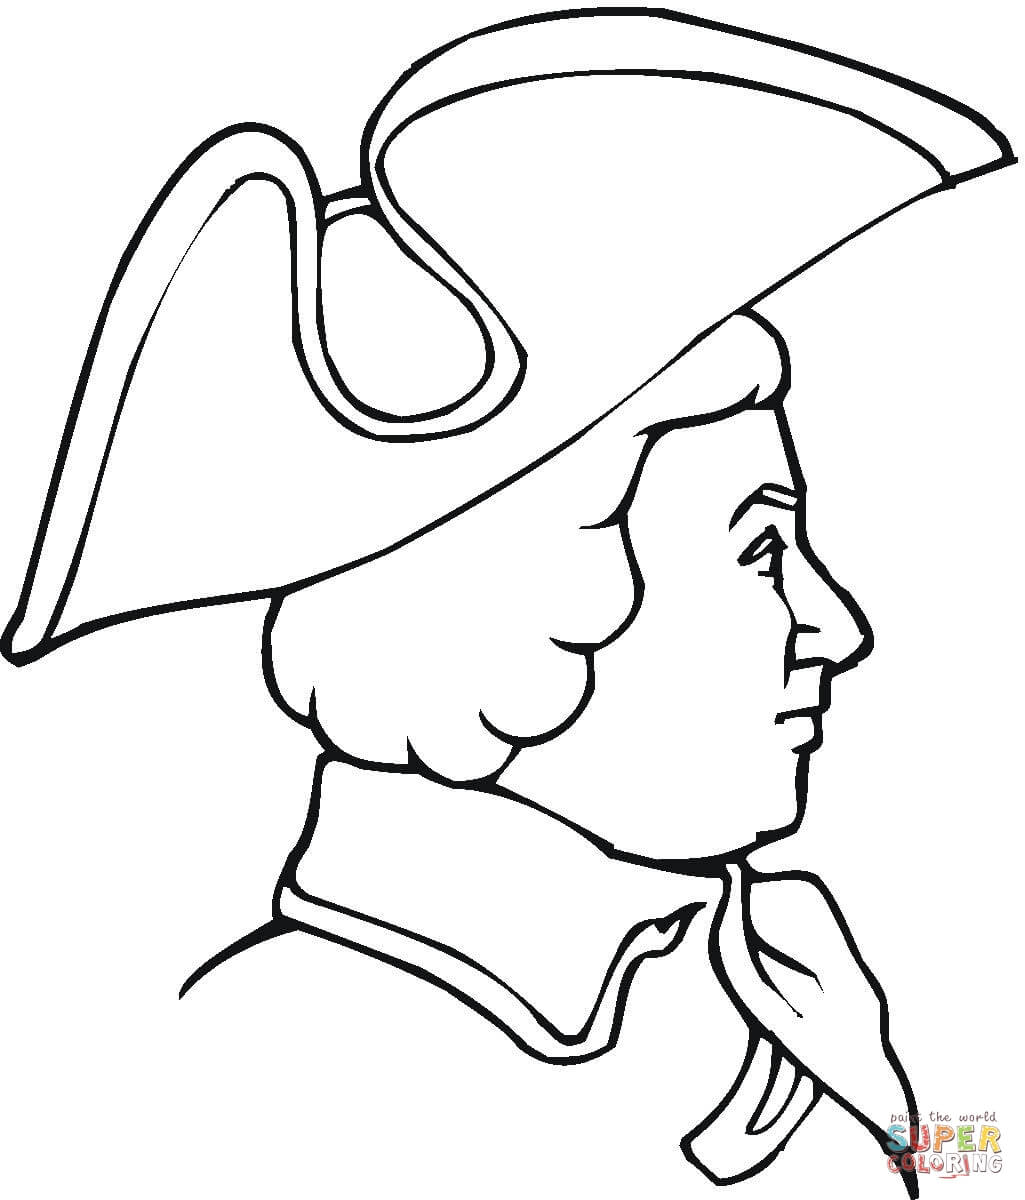 Revolutionary War Sol R Coloring Page